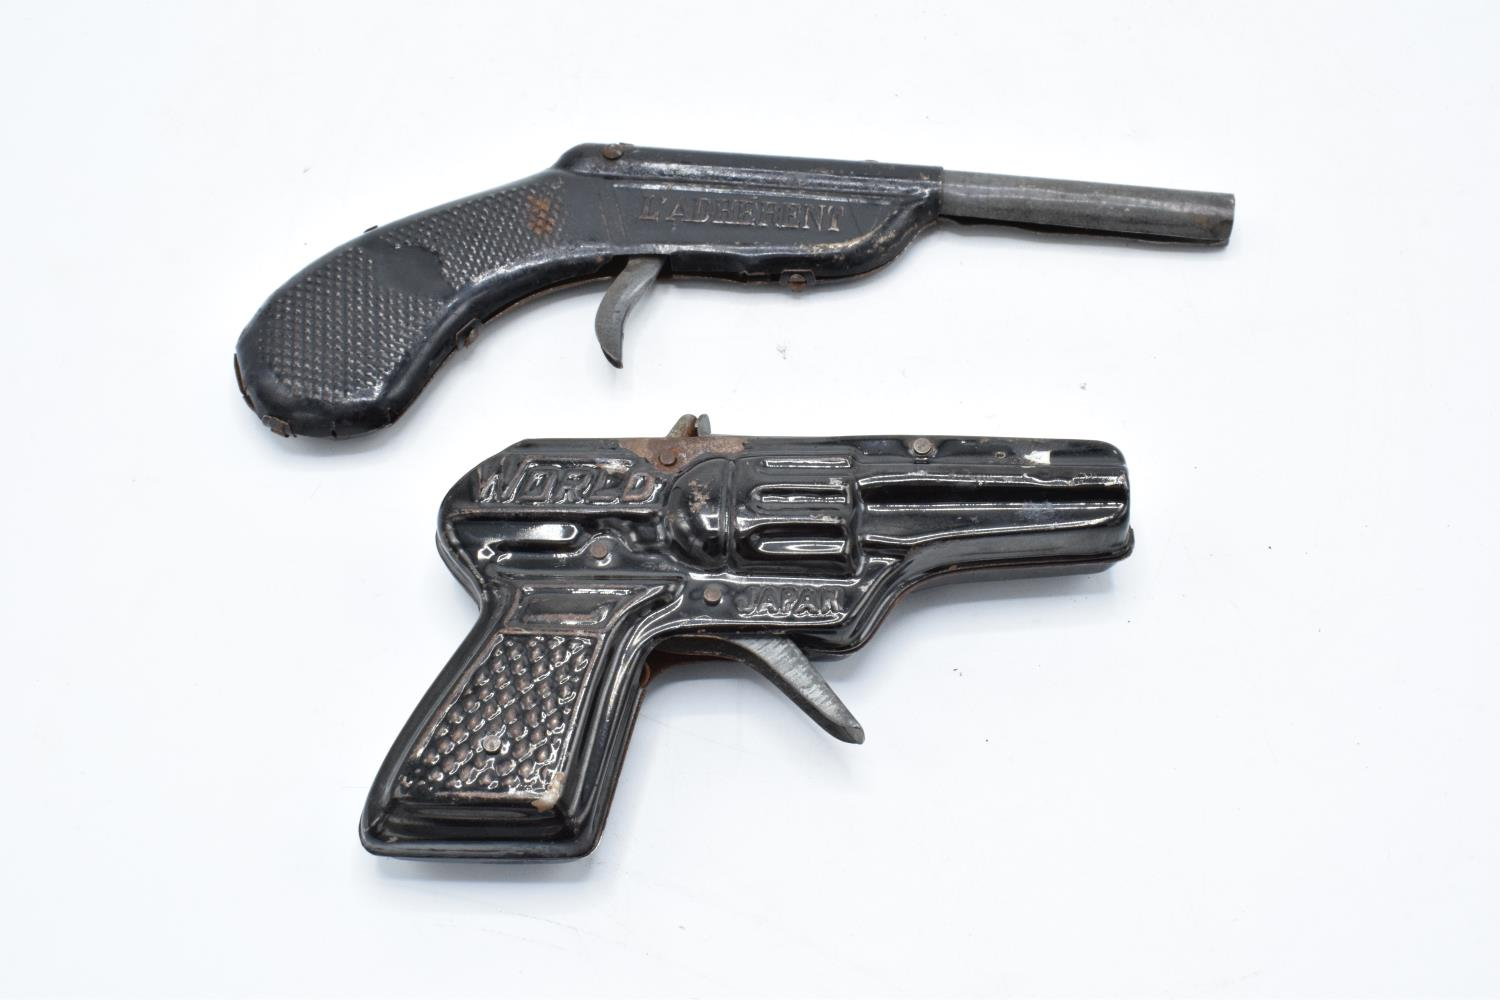 A pair of vintage mid century metal cap guns 'World' and 'L'arderent' (2). Untested. - Image 2 of 2